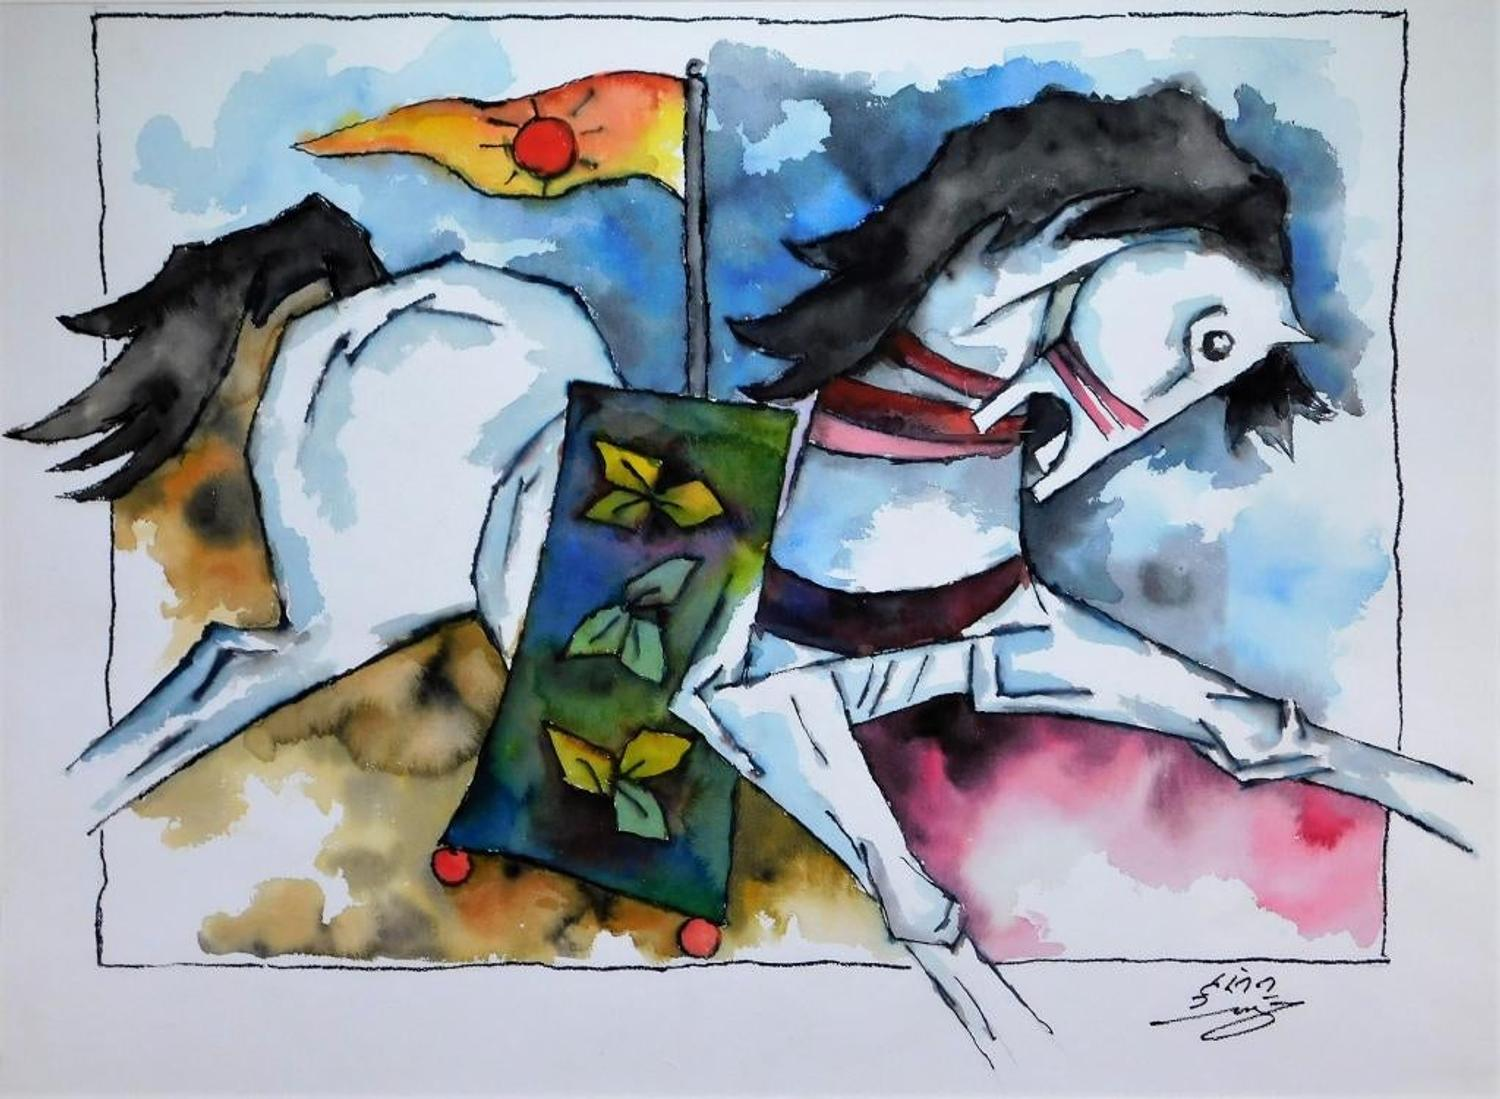 Paintings By Renowned Indian Artists Pique Bidder Interest At Bruneau Co Auction Held March 14th Artwire Press Release From Artfixdaily Com